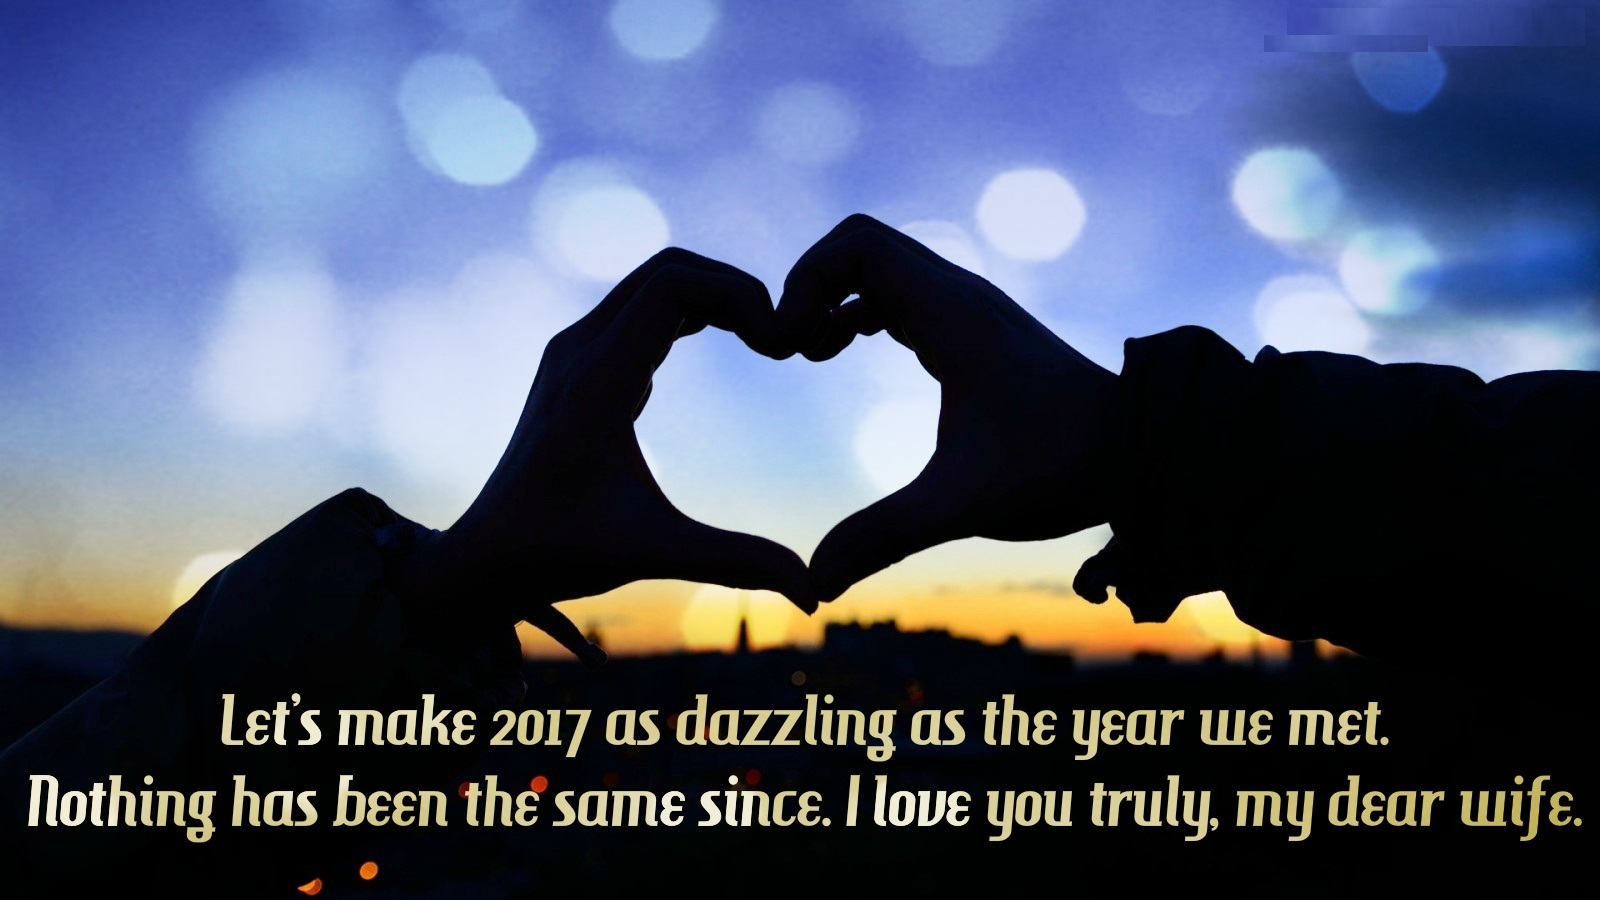 Decorative and wonderful happy new year images 2018 are available the new year images are such images that works like a messenger in your life the things you do not even dare to speak up images can speak in most romantic kristyandbryce Choice Image